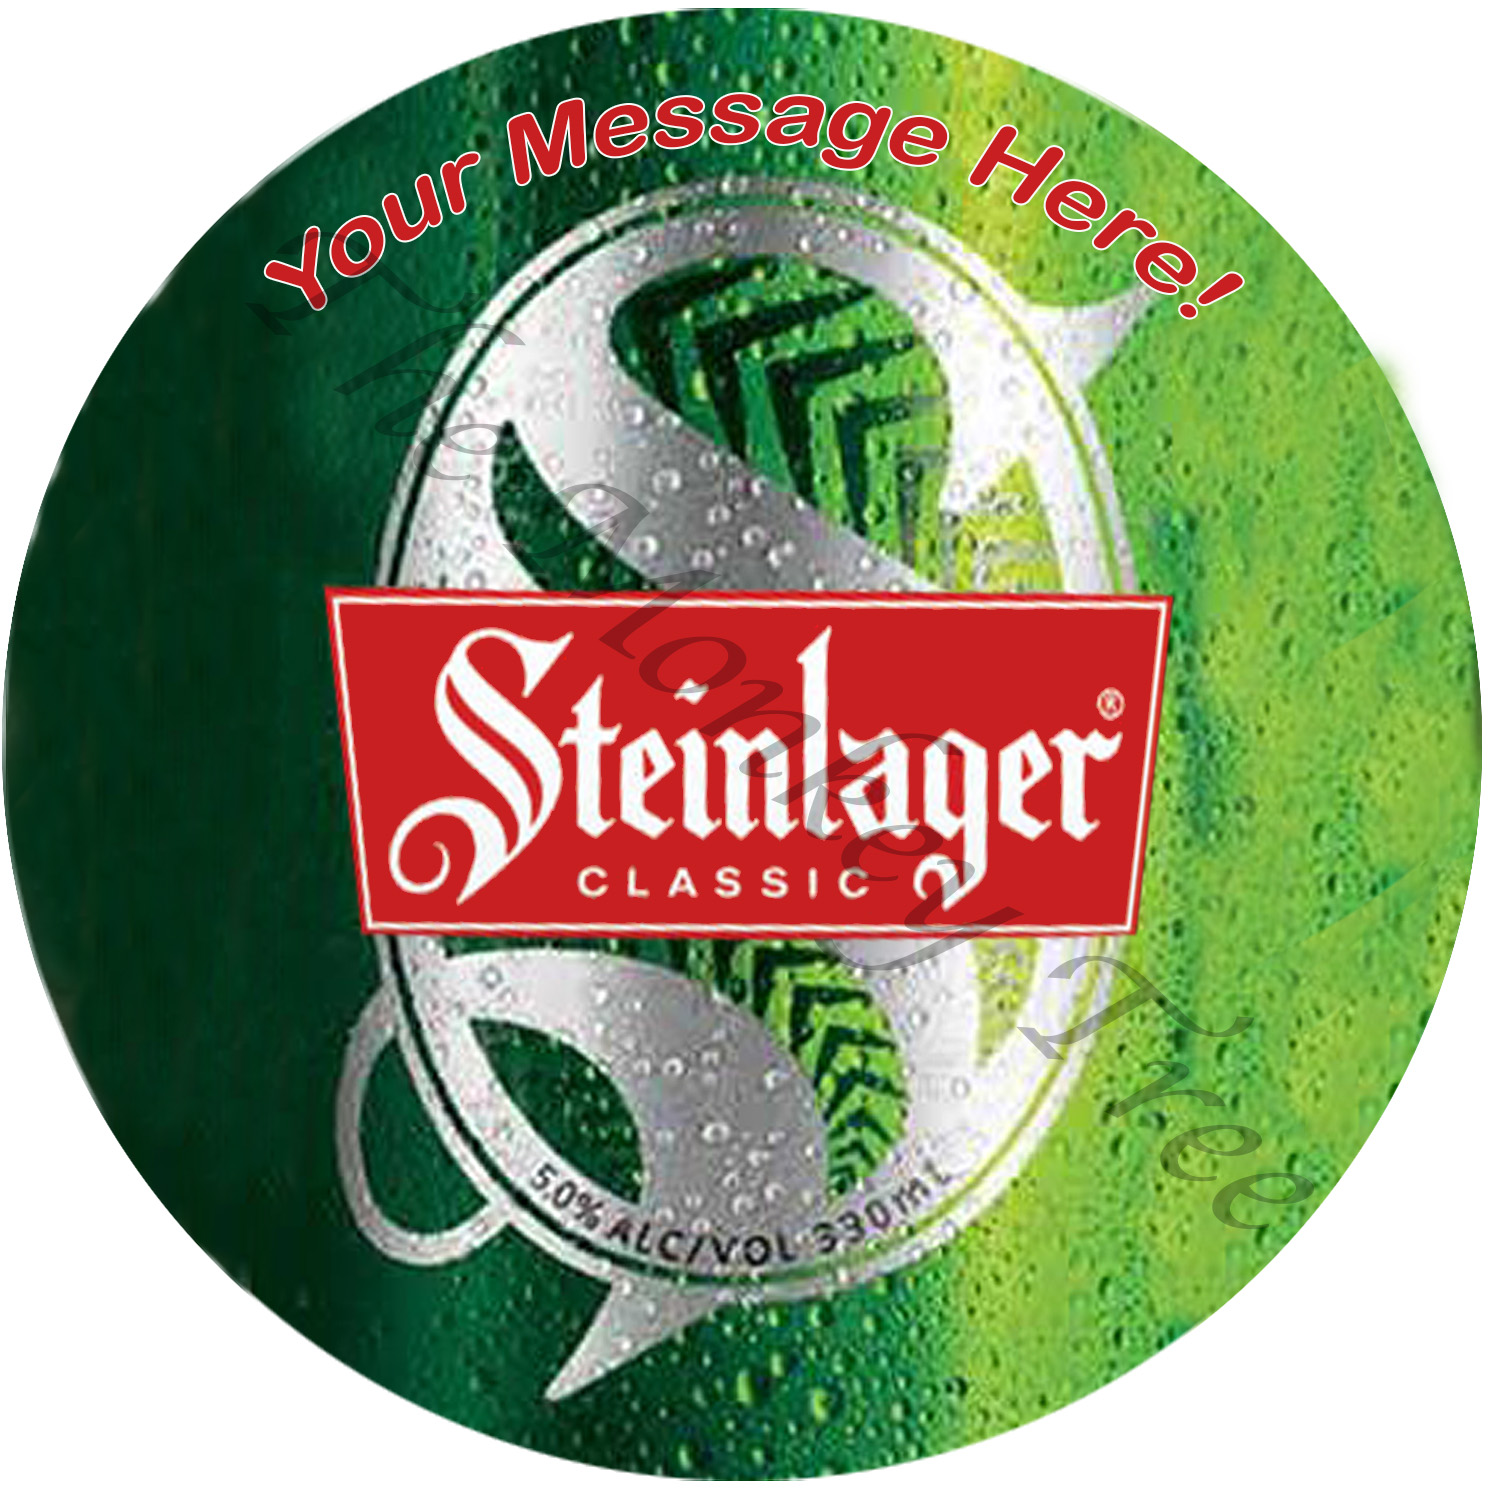 Steinlager 60th 50th 21st beer bike birthday cake edible cake image topper Steinlager pub alcohol